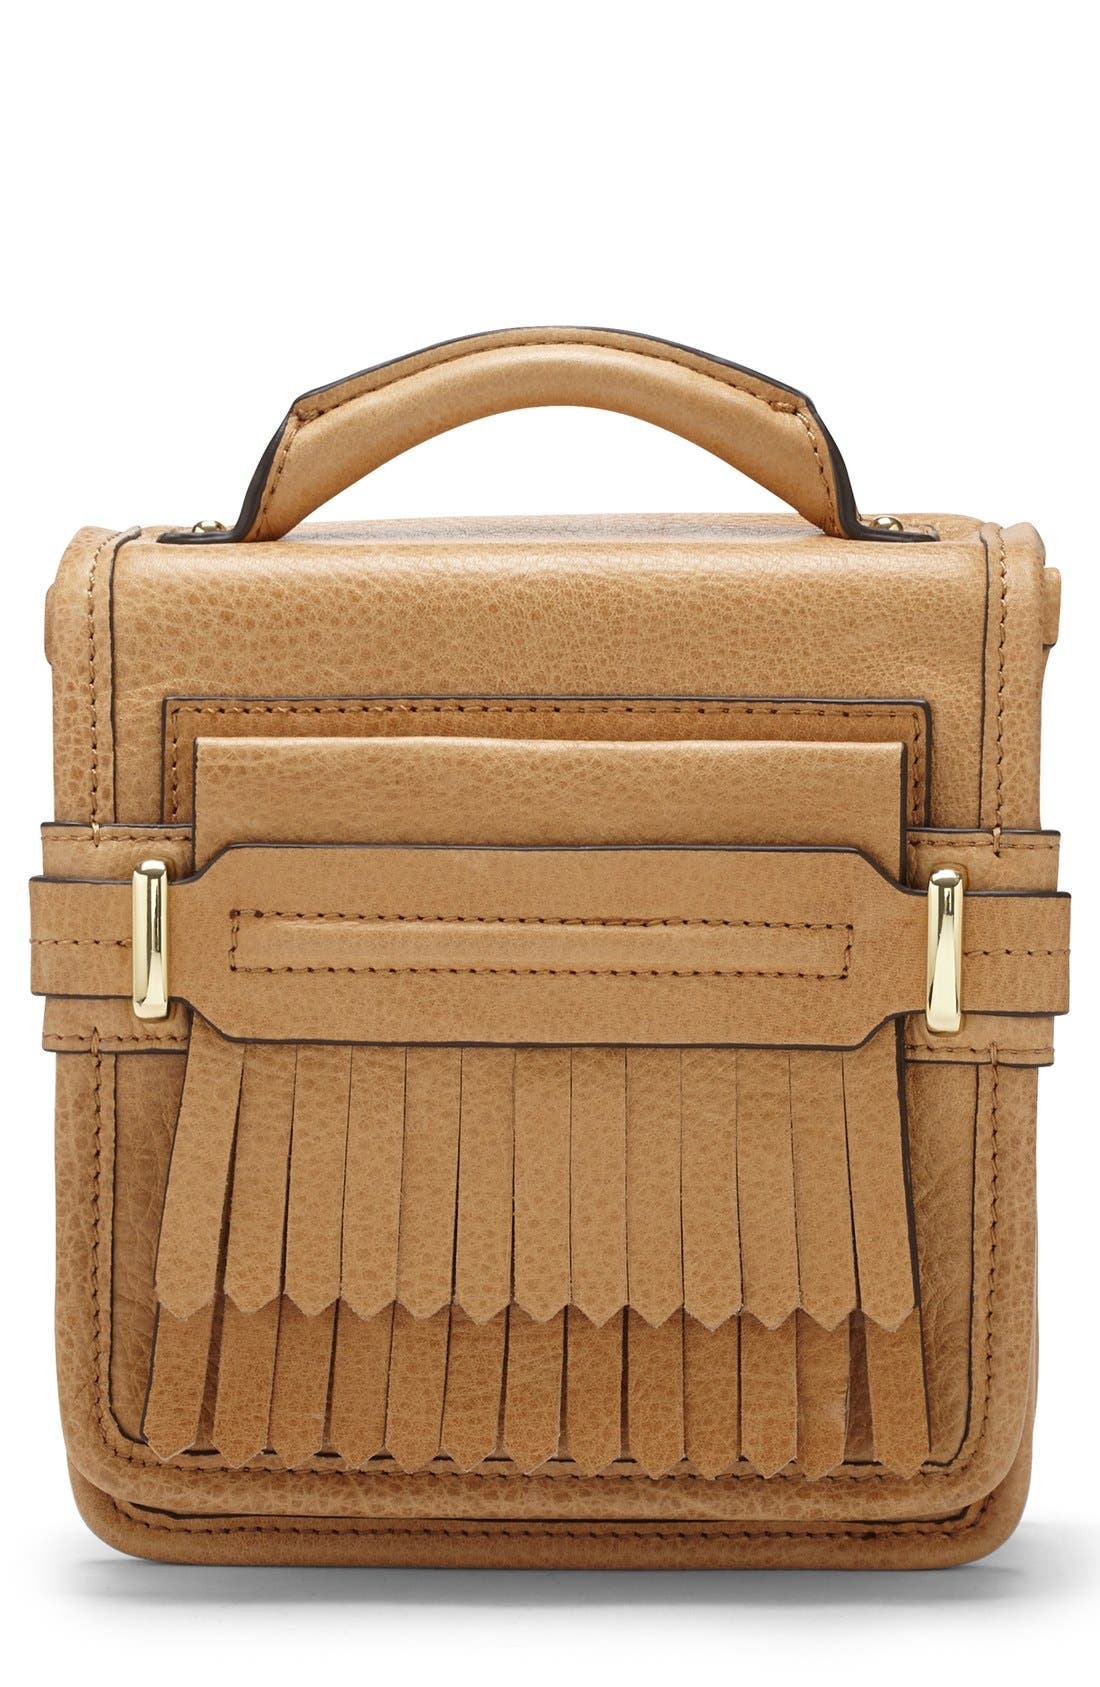 Alternate Image 1 Selected - Vince Camuto 'Sofia - Small' Fringe Leather Crossbody Bag